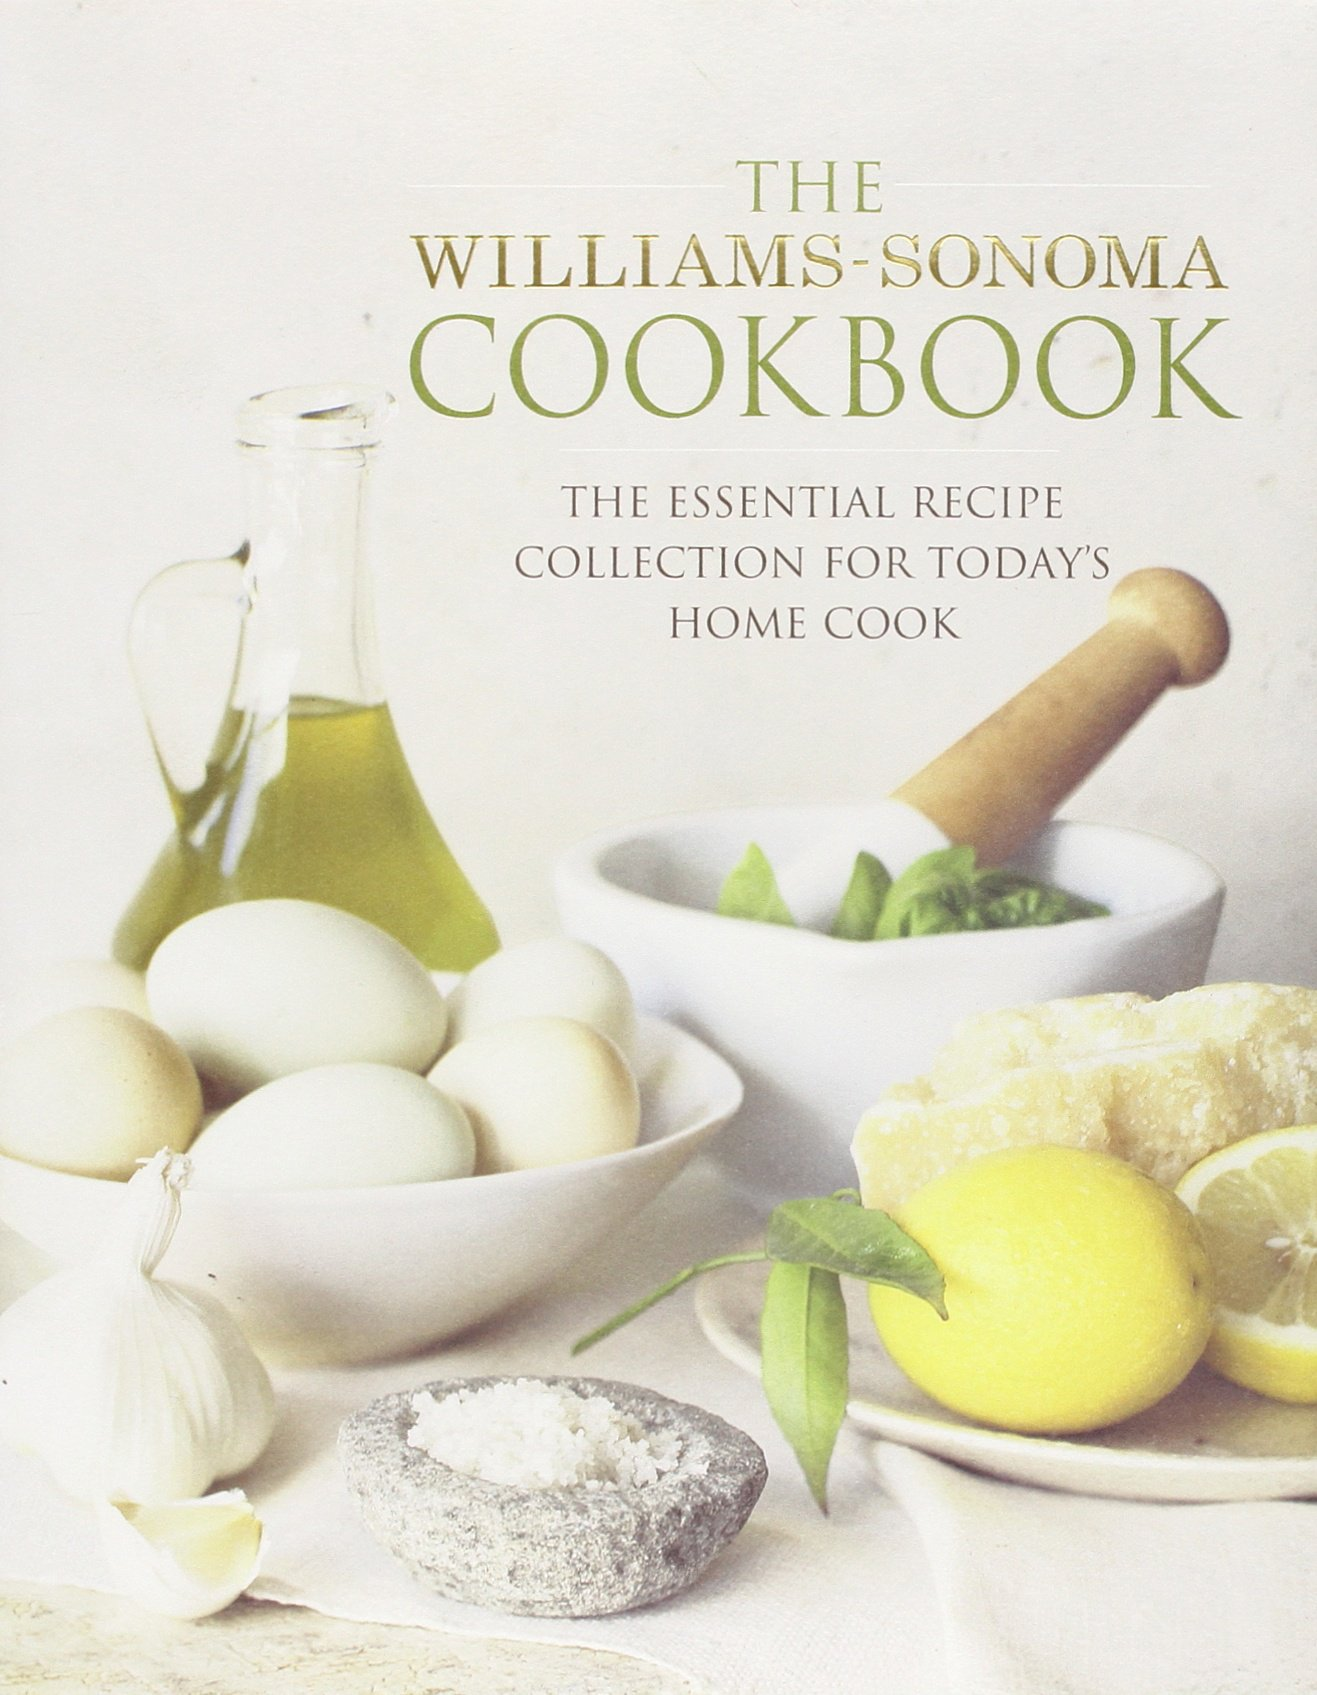 The williams sonoma cookbook the essential recipe collection for the williams sonoma cookbook the essential recipe collection for todays home cook williams sonoma laurie frankel 8601420733688 amazon books forumfinder Gallery